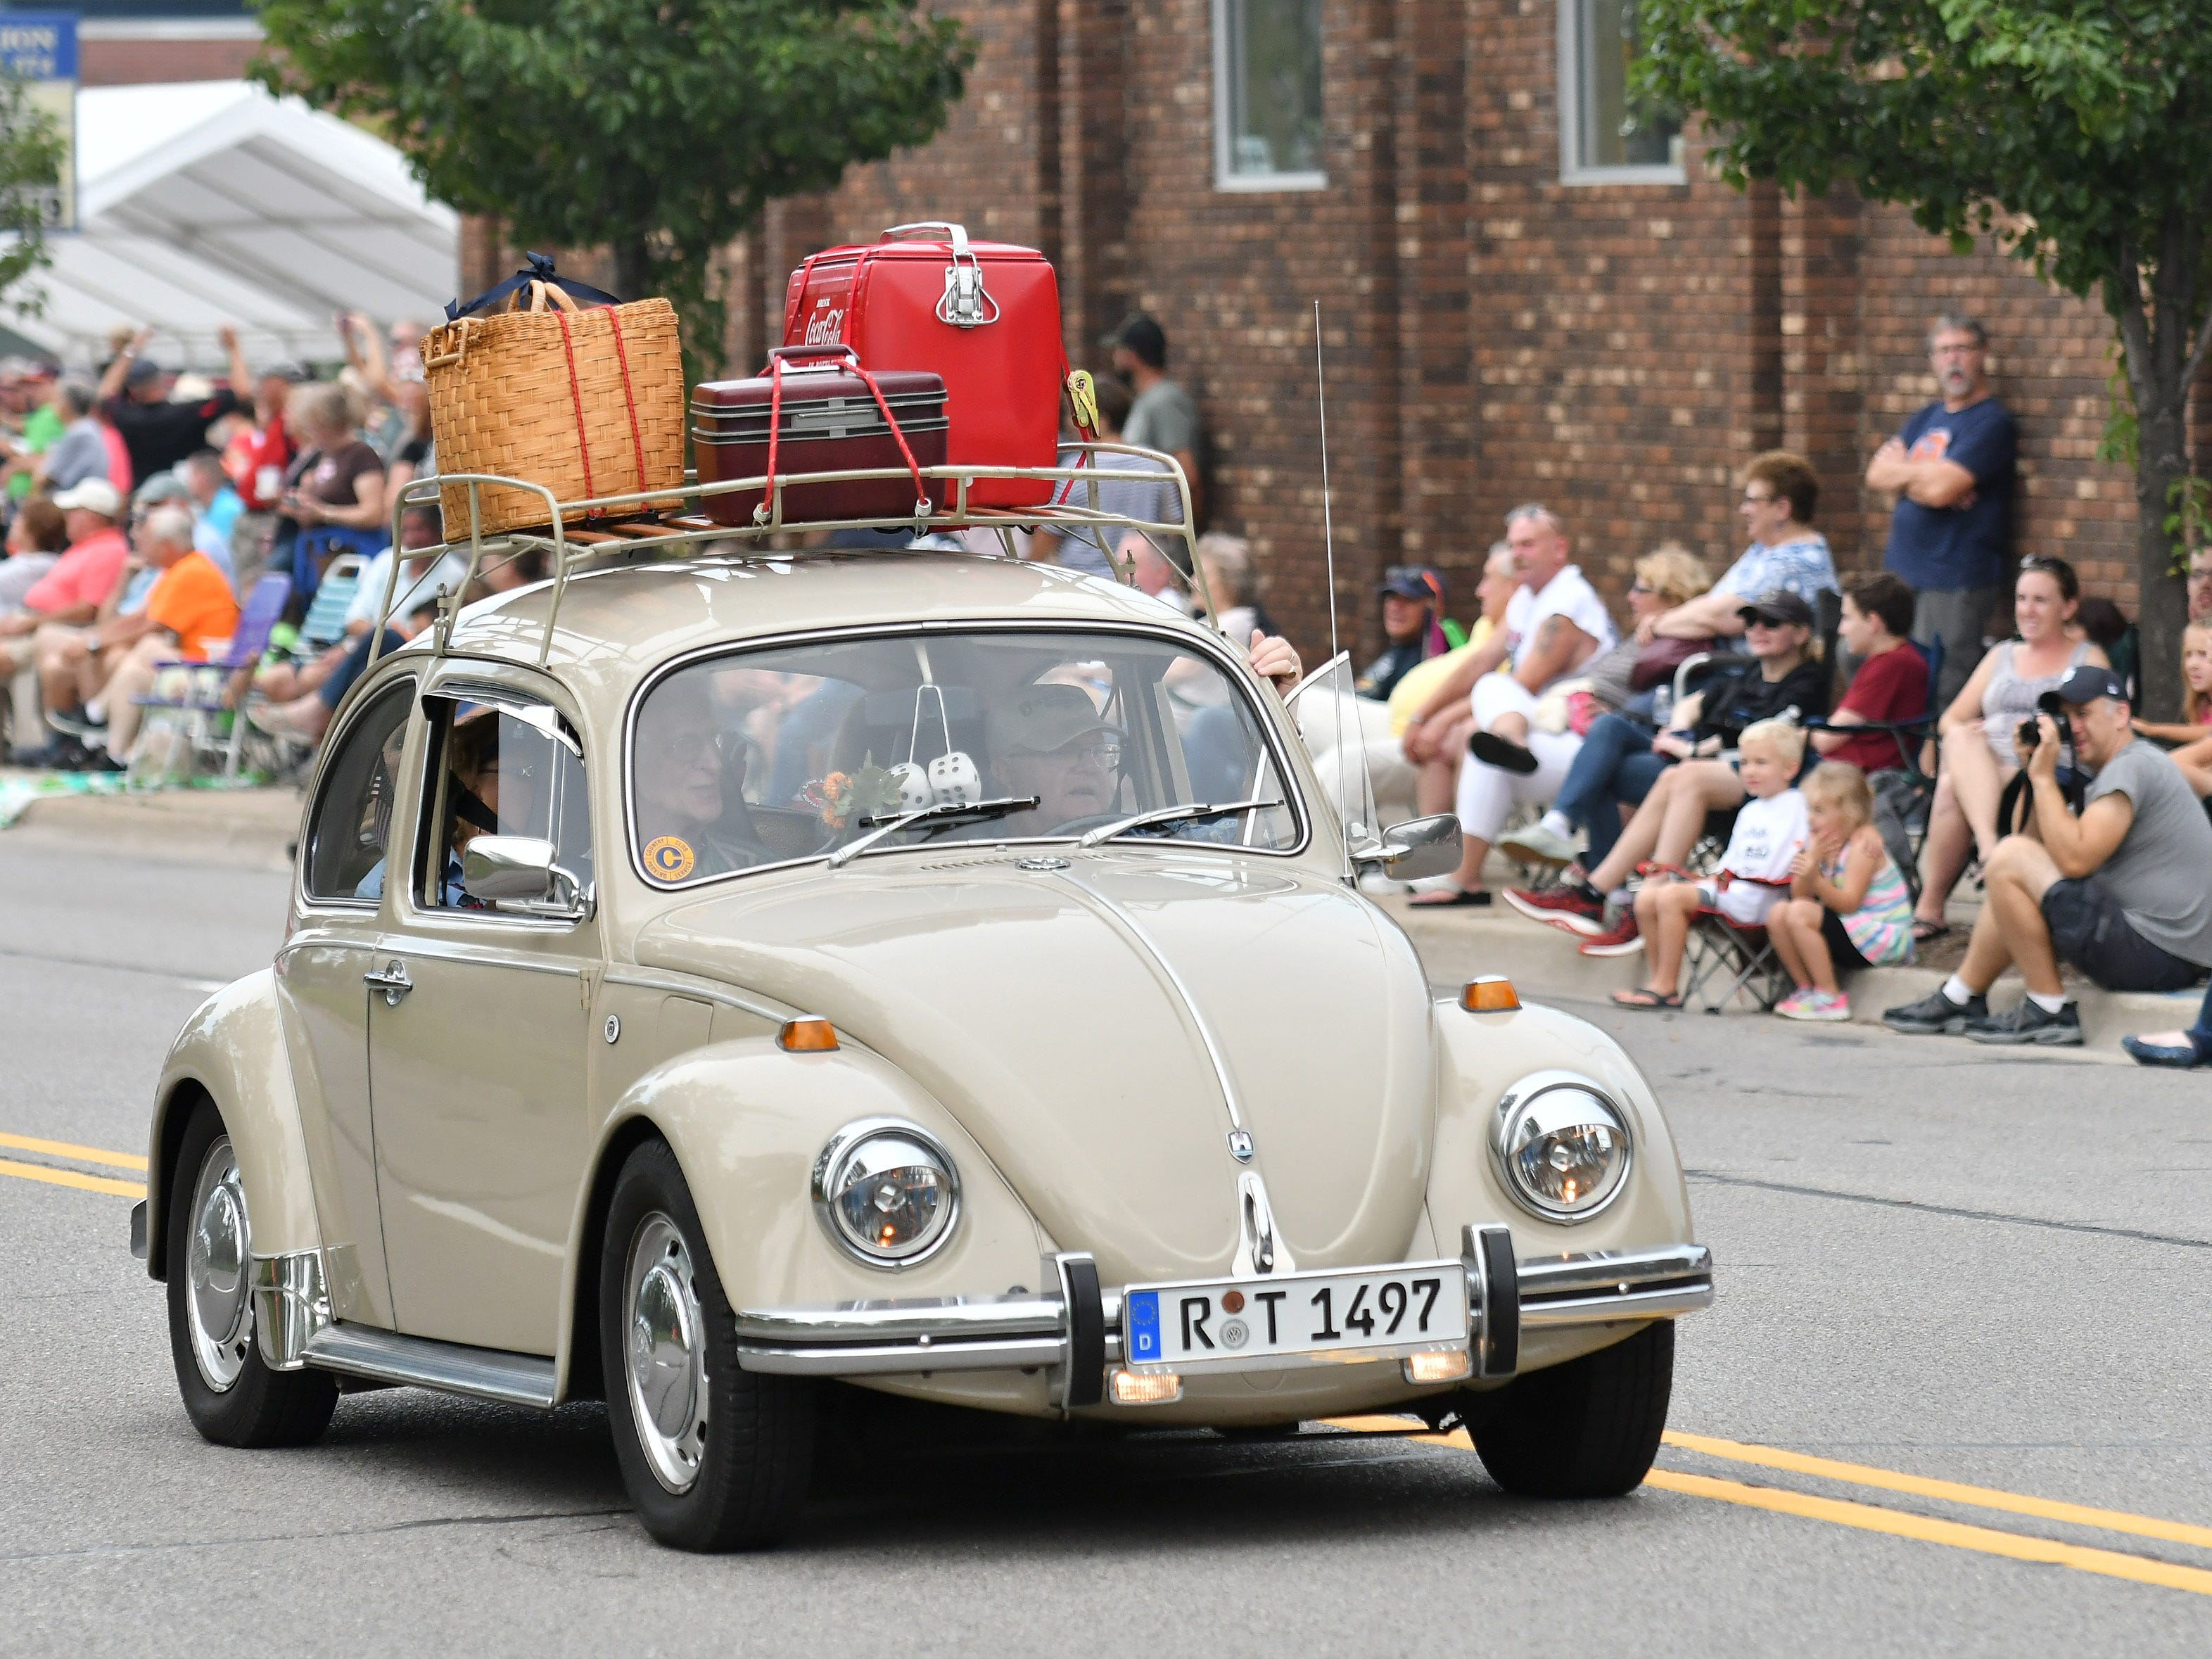 A Volkswagen Beetle rolls in the Berkley CruiseFest Classic Car Parade.